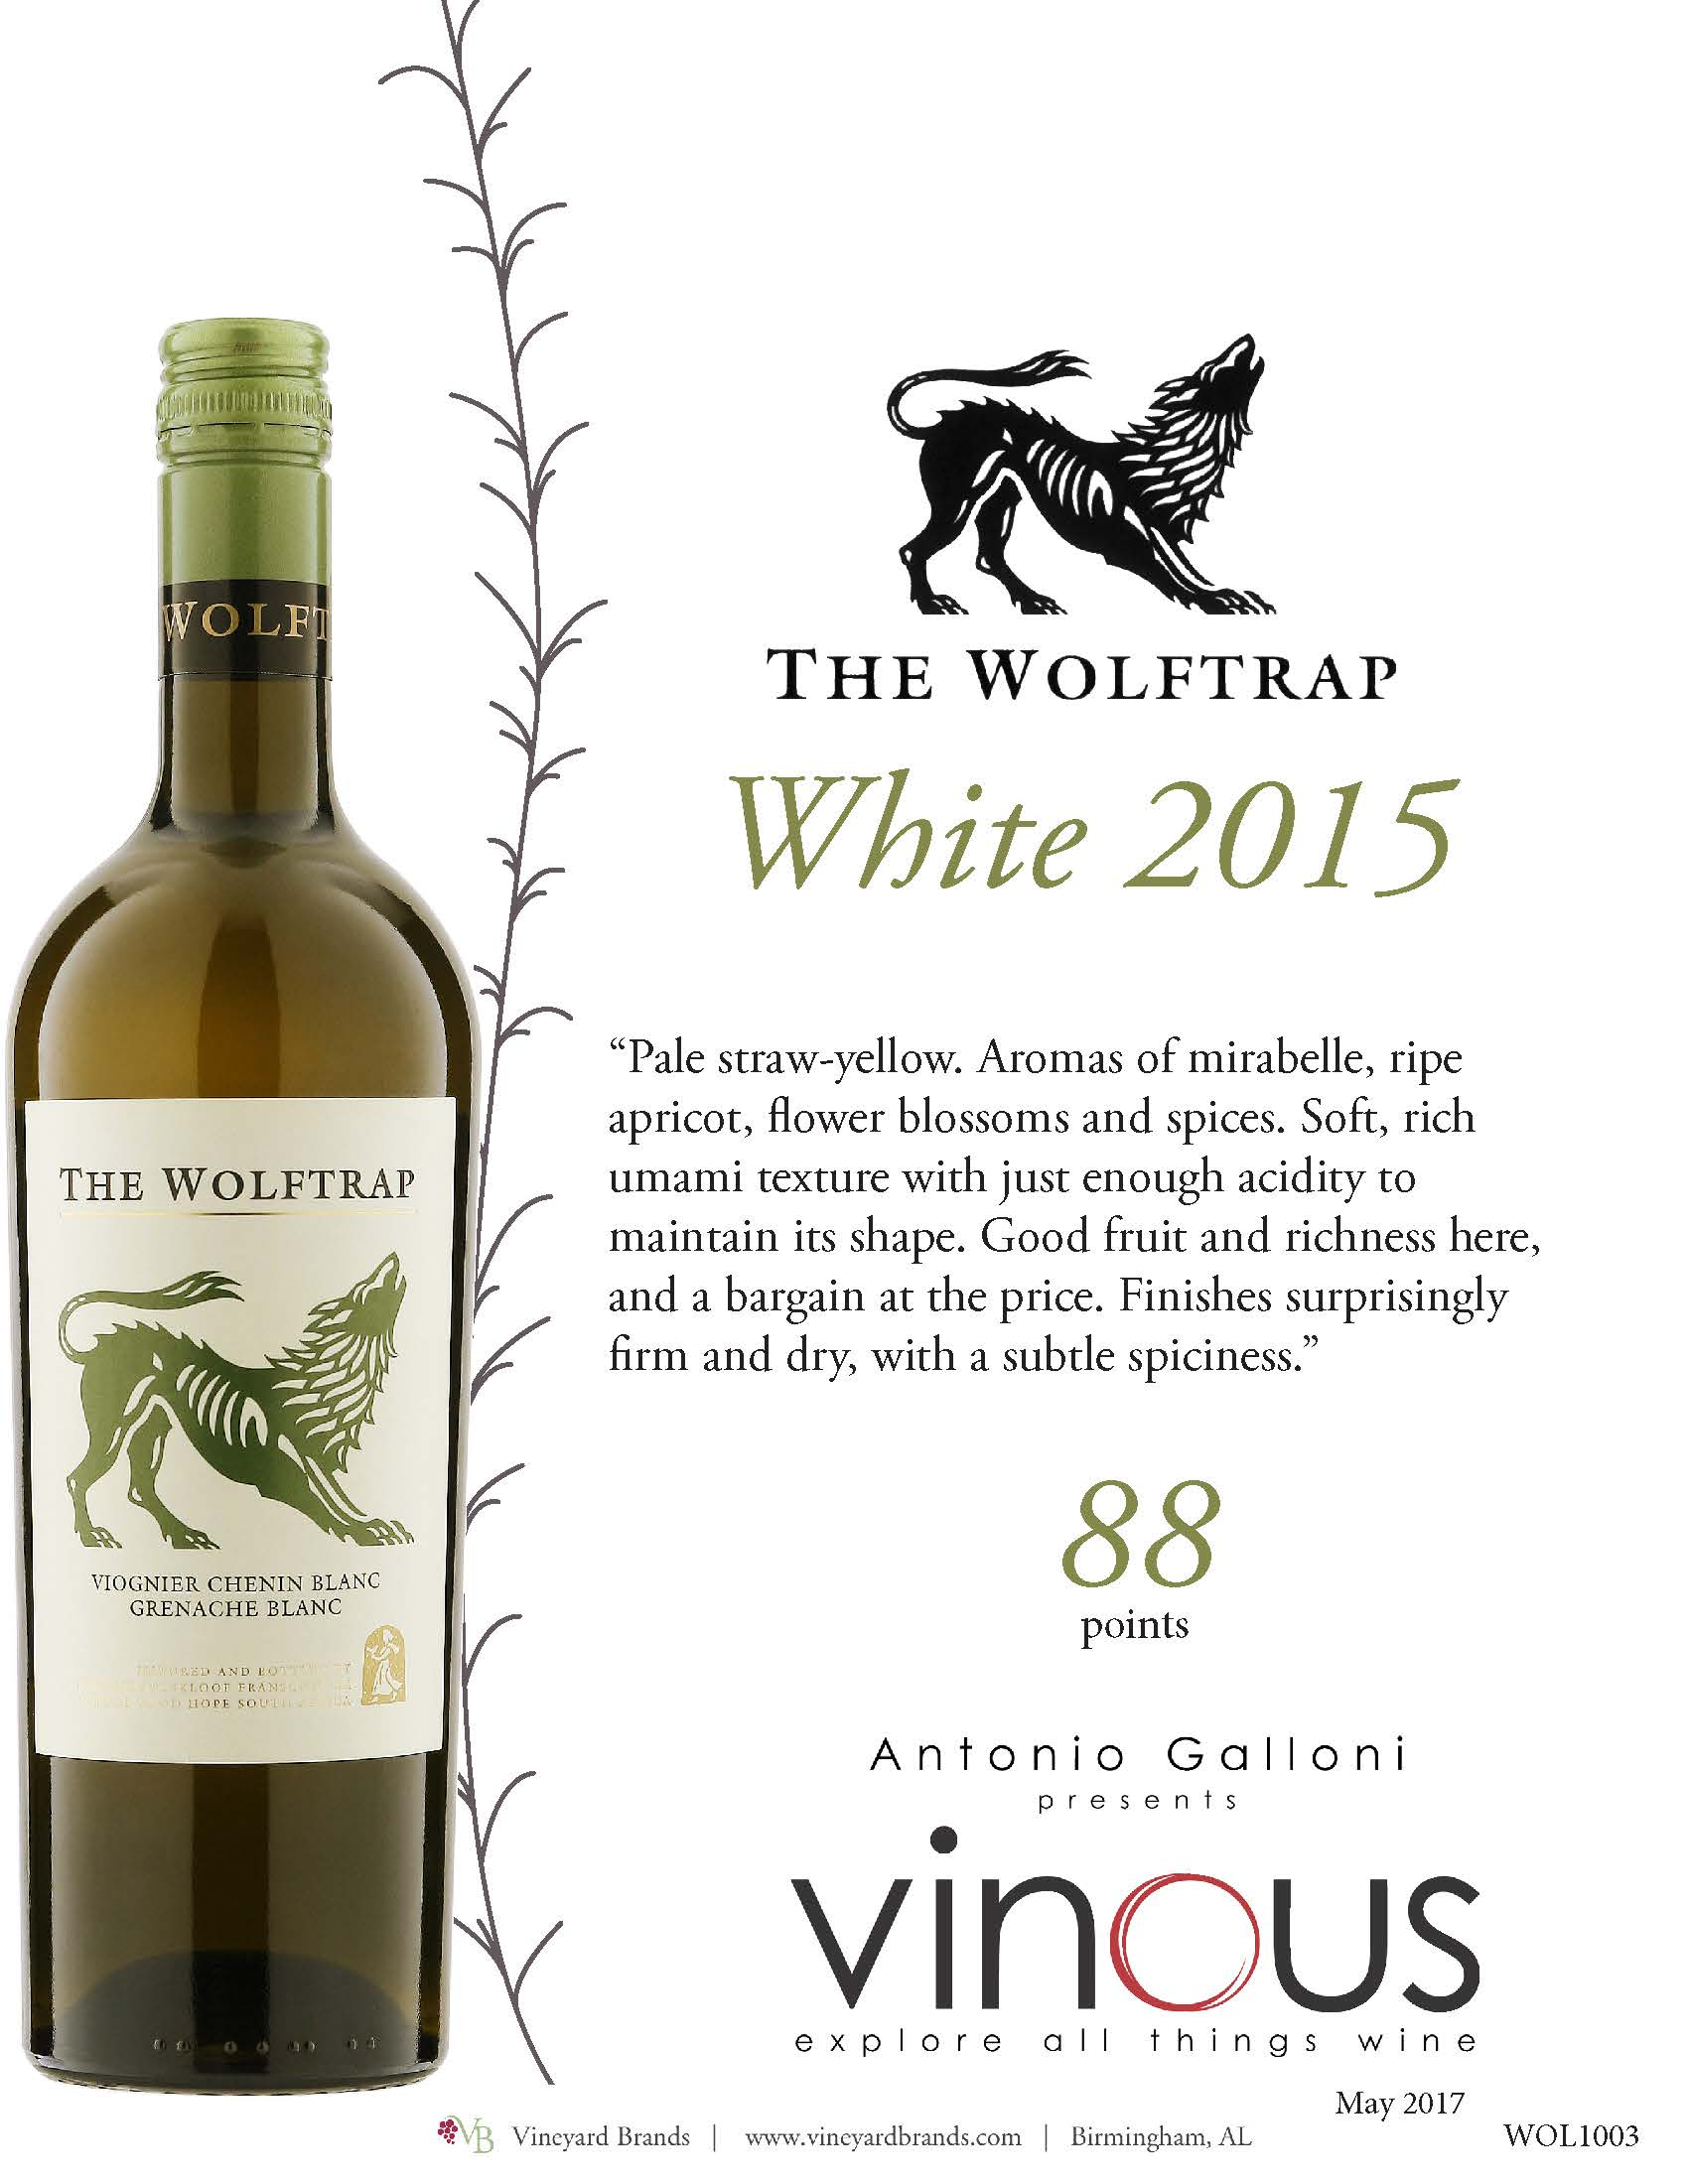 The Wolftrap White 2015.jpg